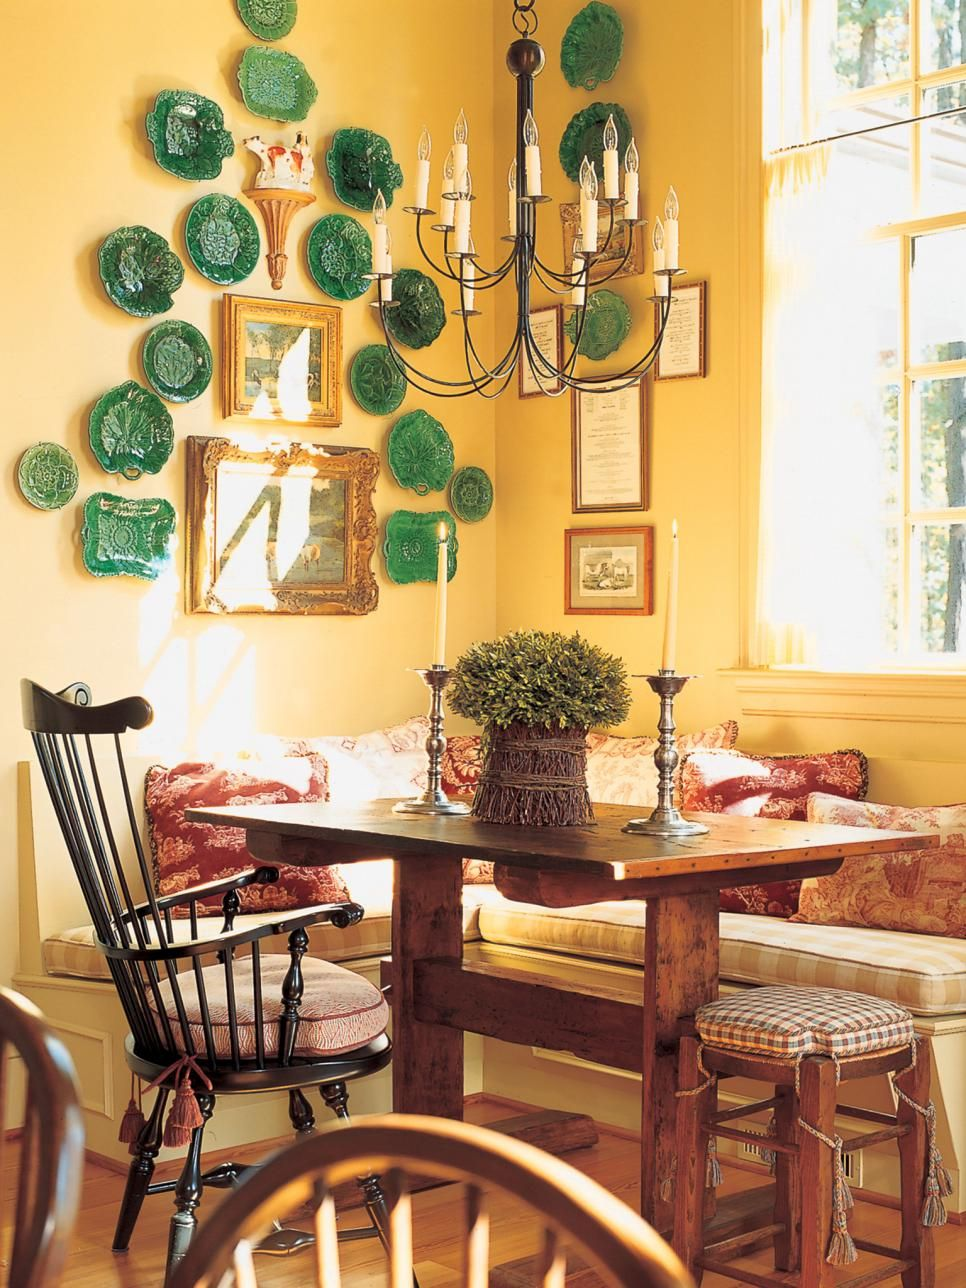 This high-ceiling dining room features a collection of green plates ...